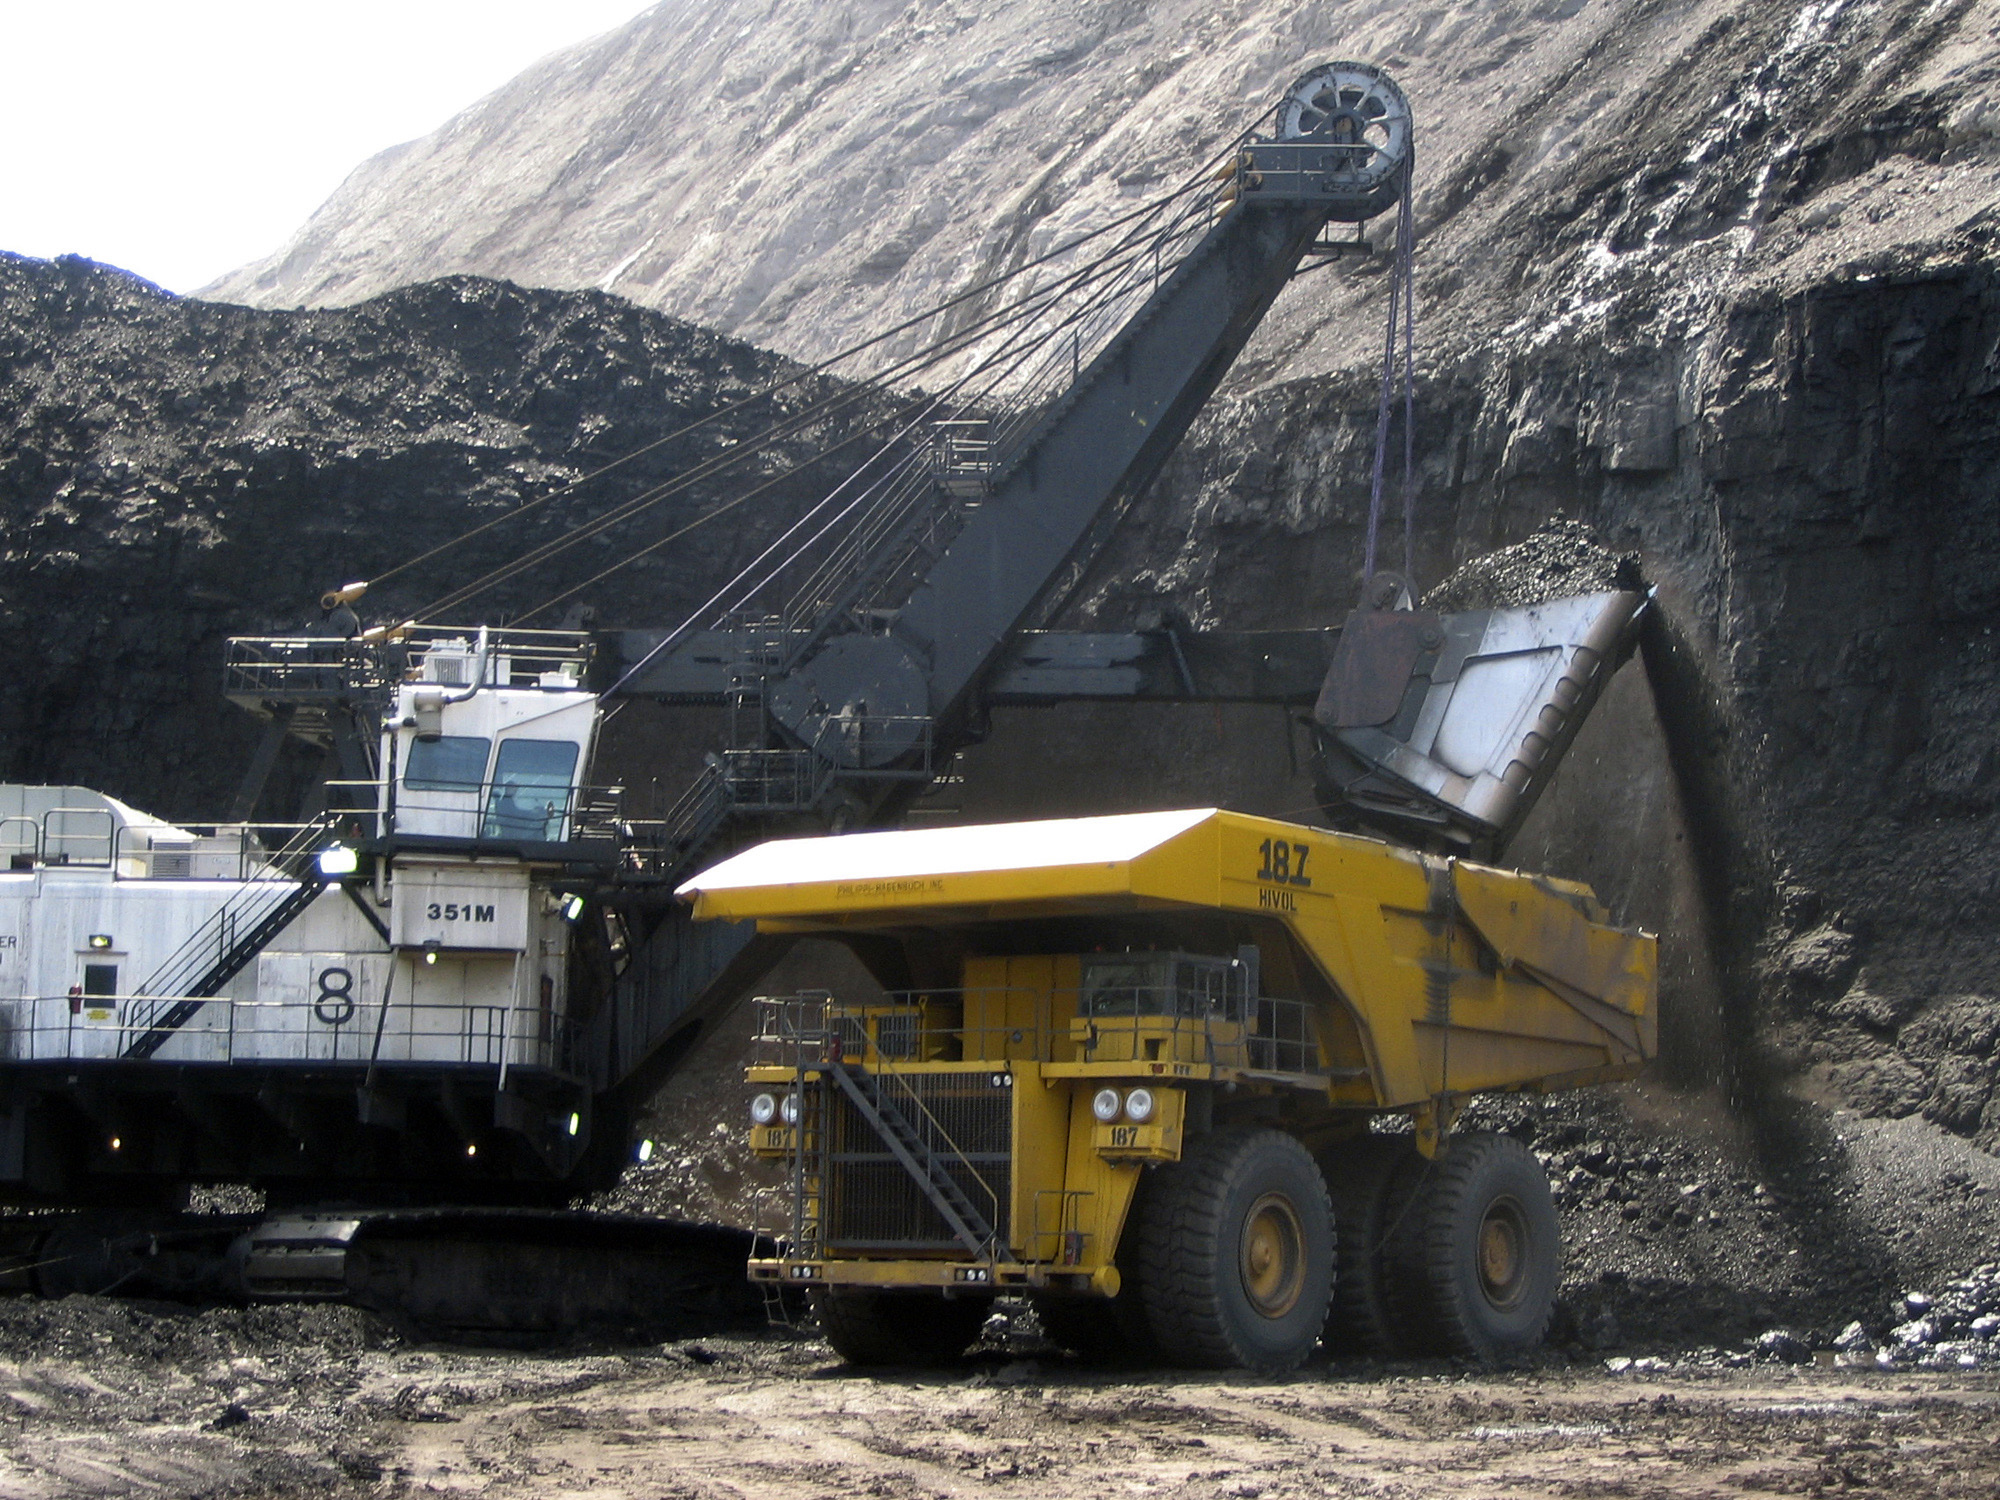 <p>In this file photo, a shovel prepares to dump a load of coal into a 320-ton truck at the Black Thunder Mine in Wright, Wyo. Black thunder Mine is owned by Arch Coal Co.</p>